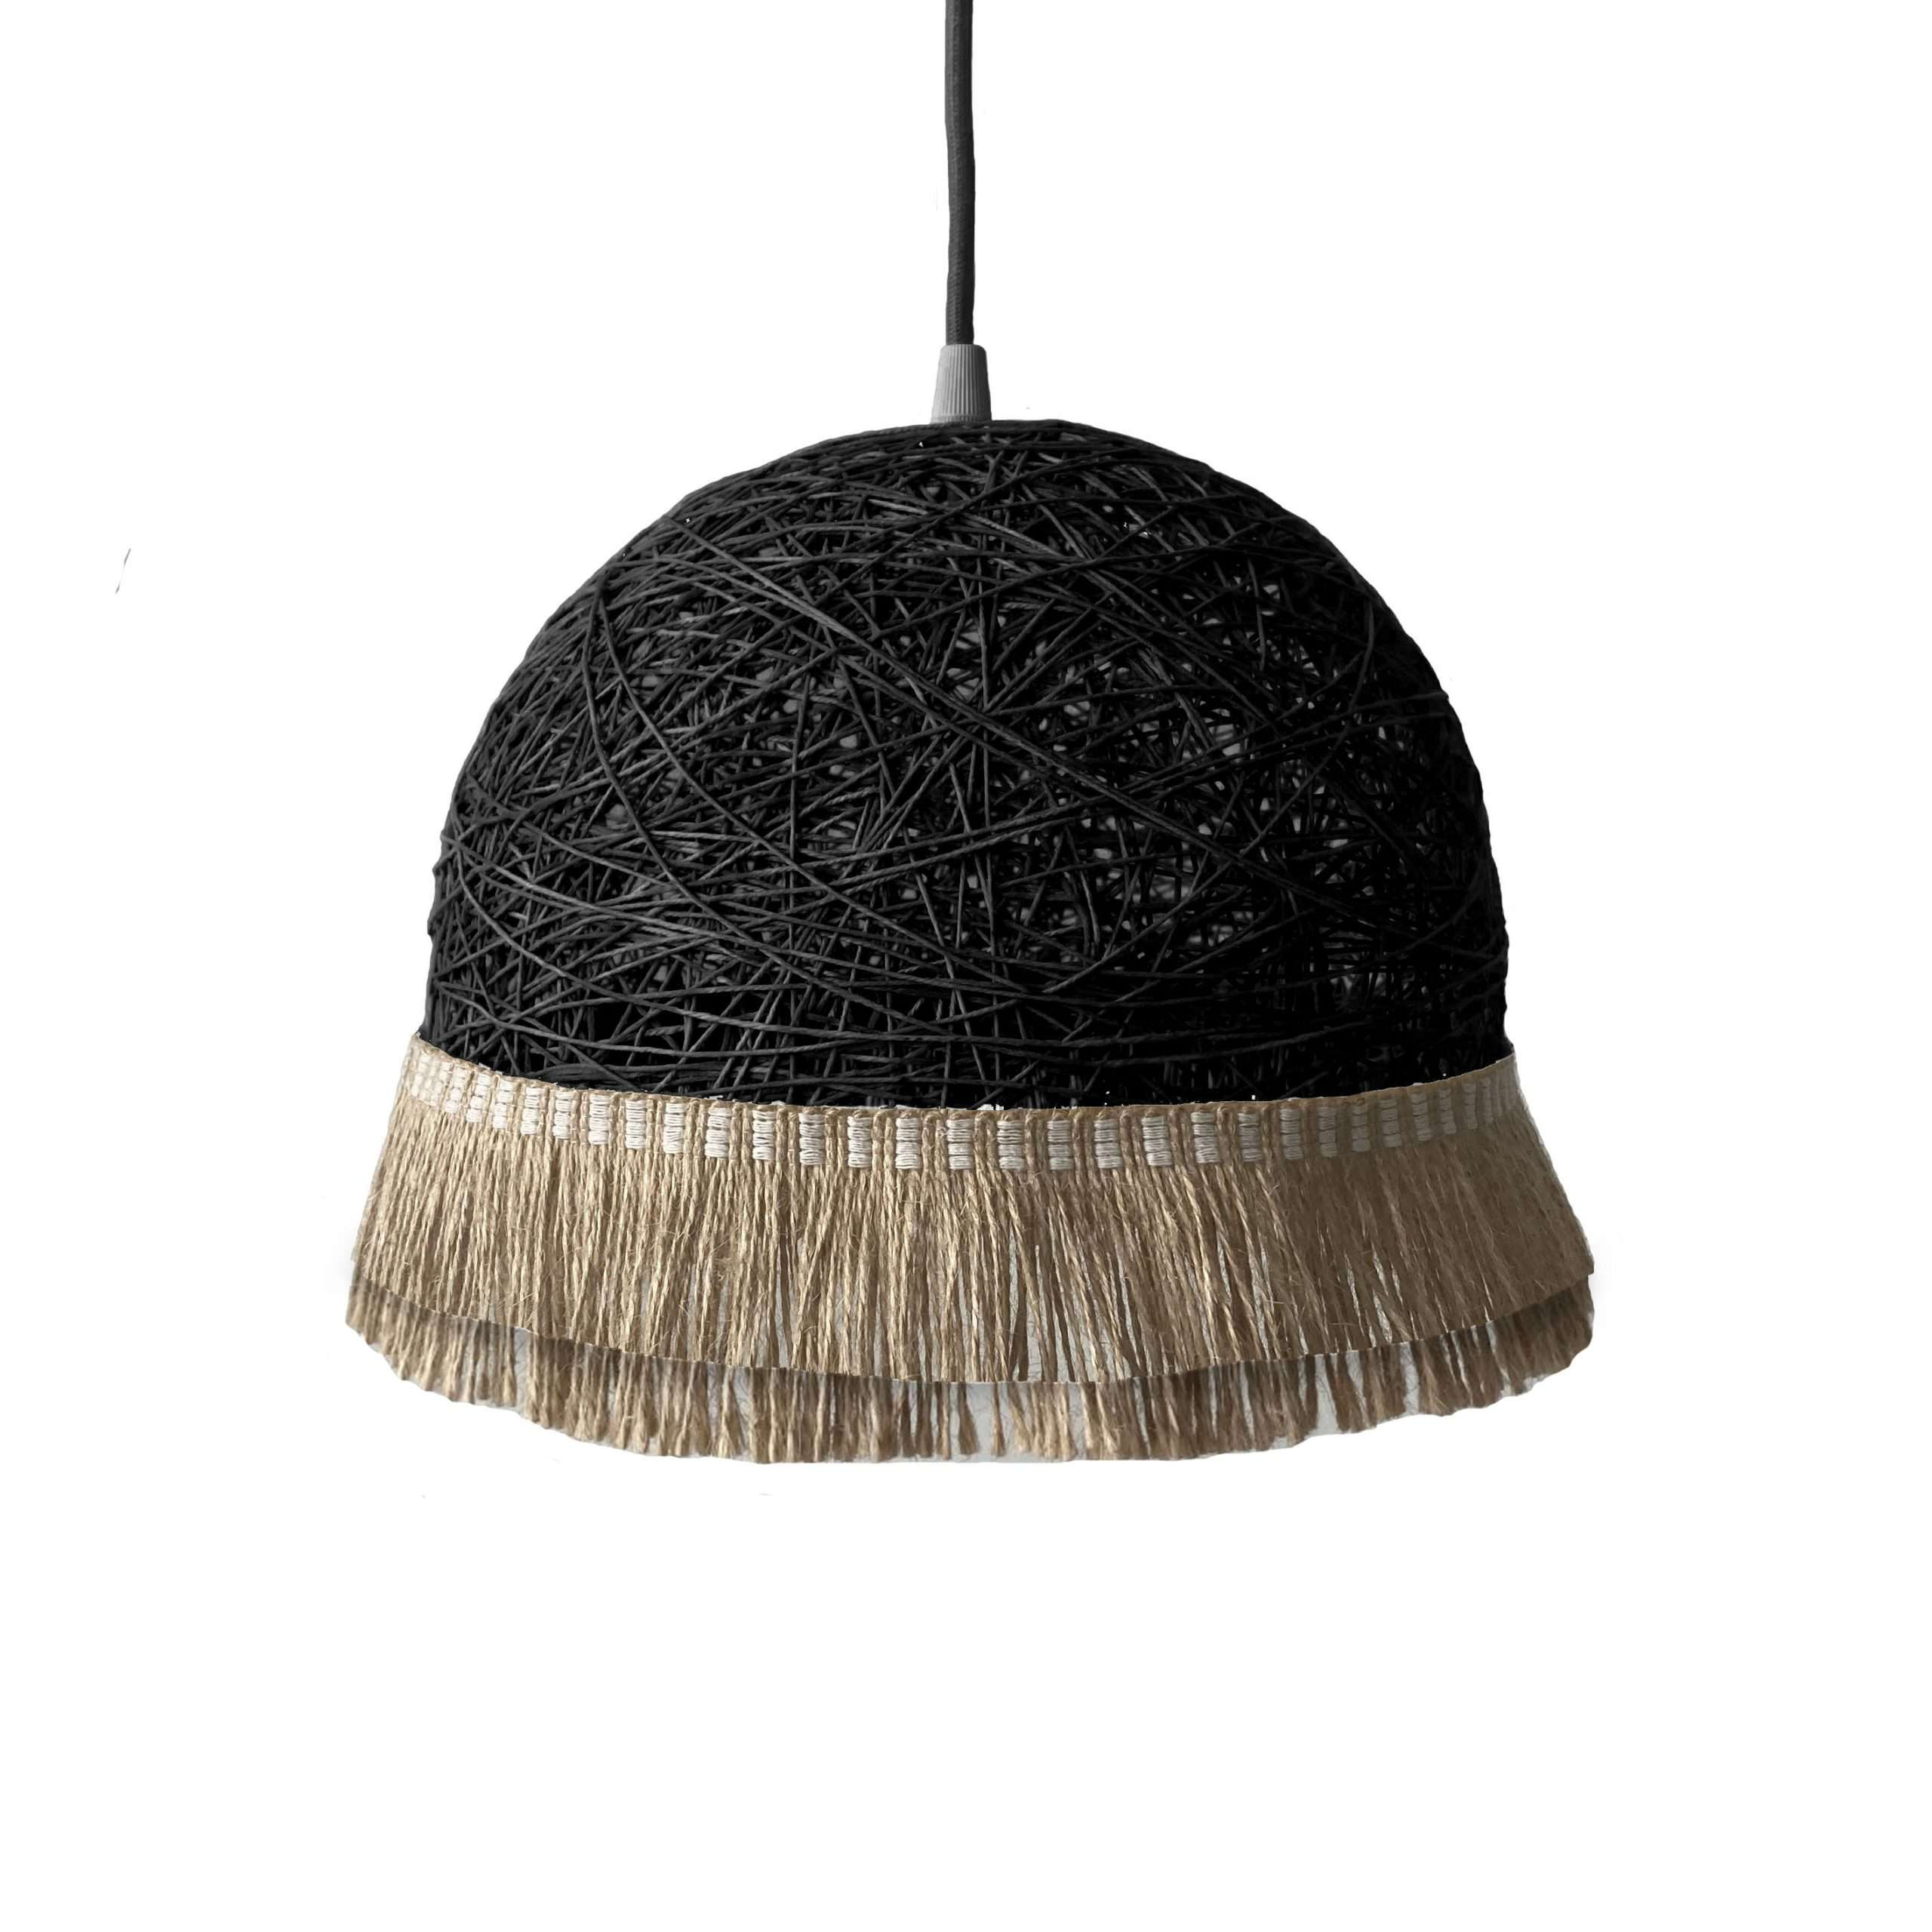 Modern pendant light - TWO FRINGES black